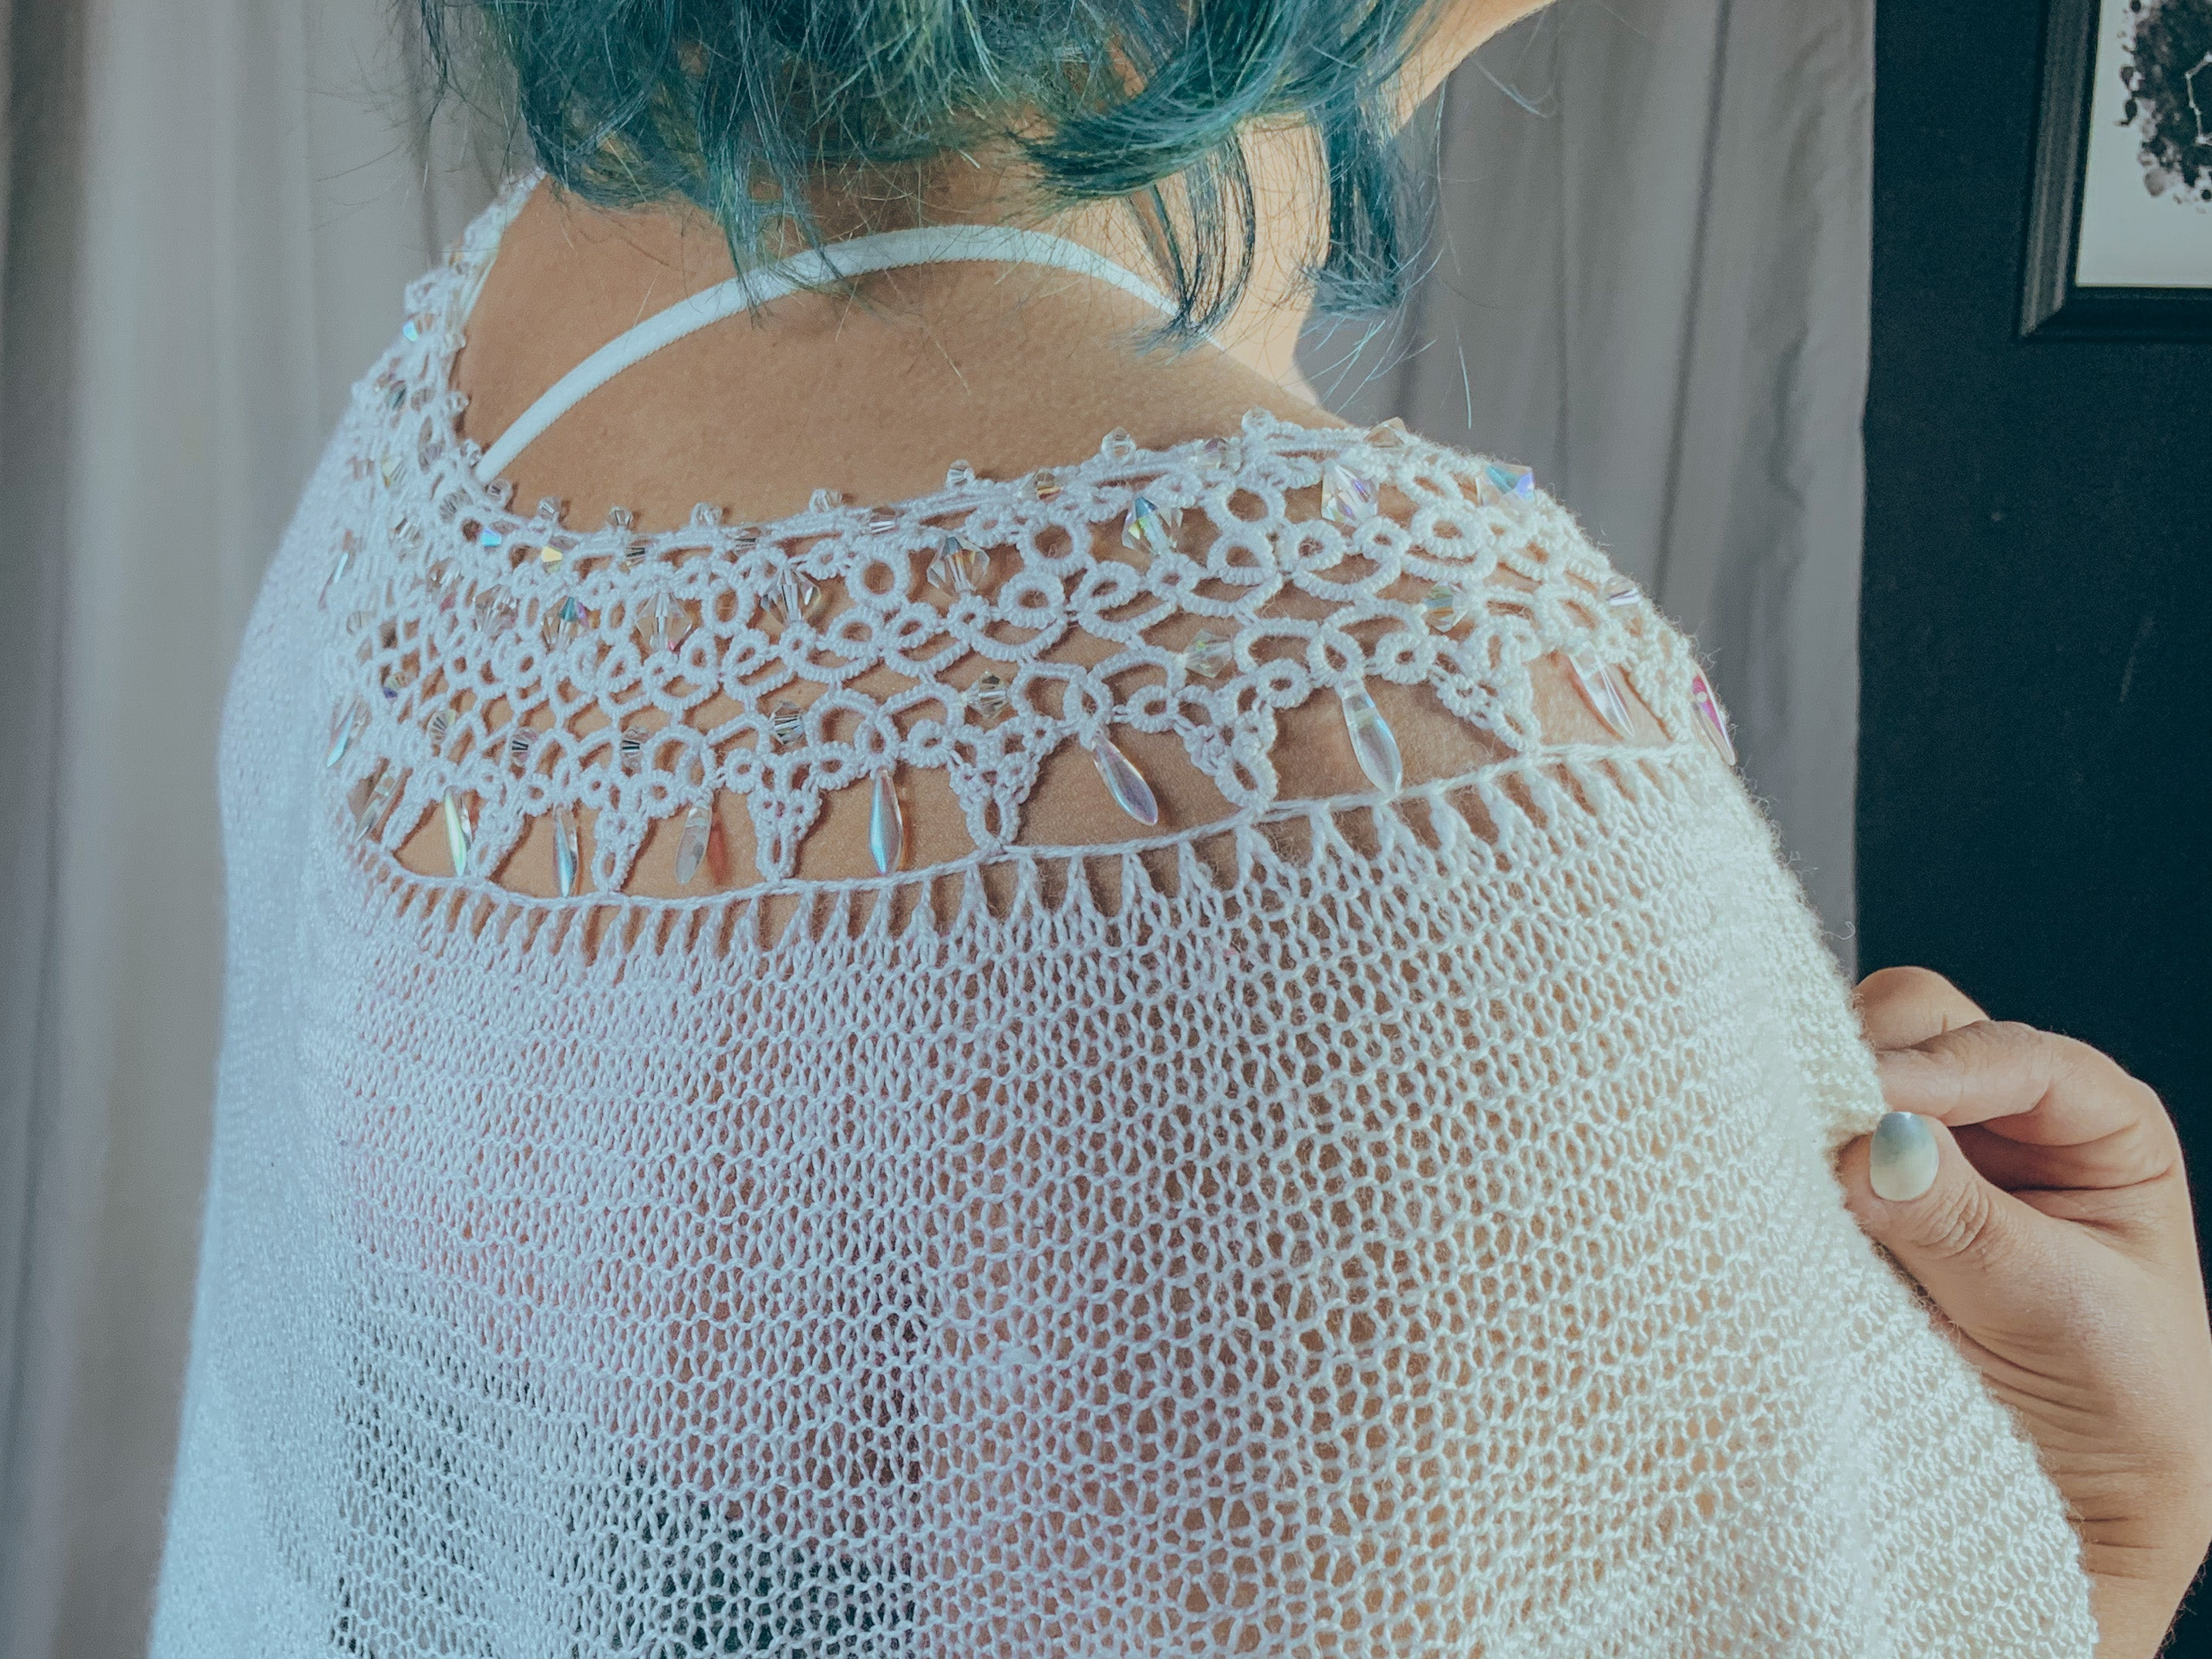 The Snow Queen's shawl